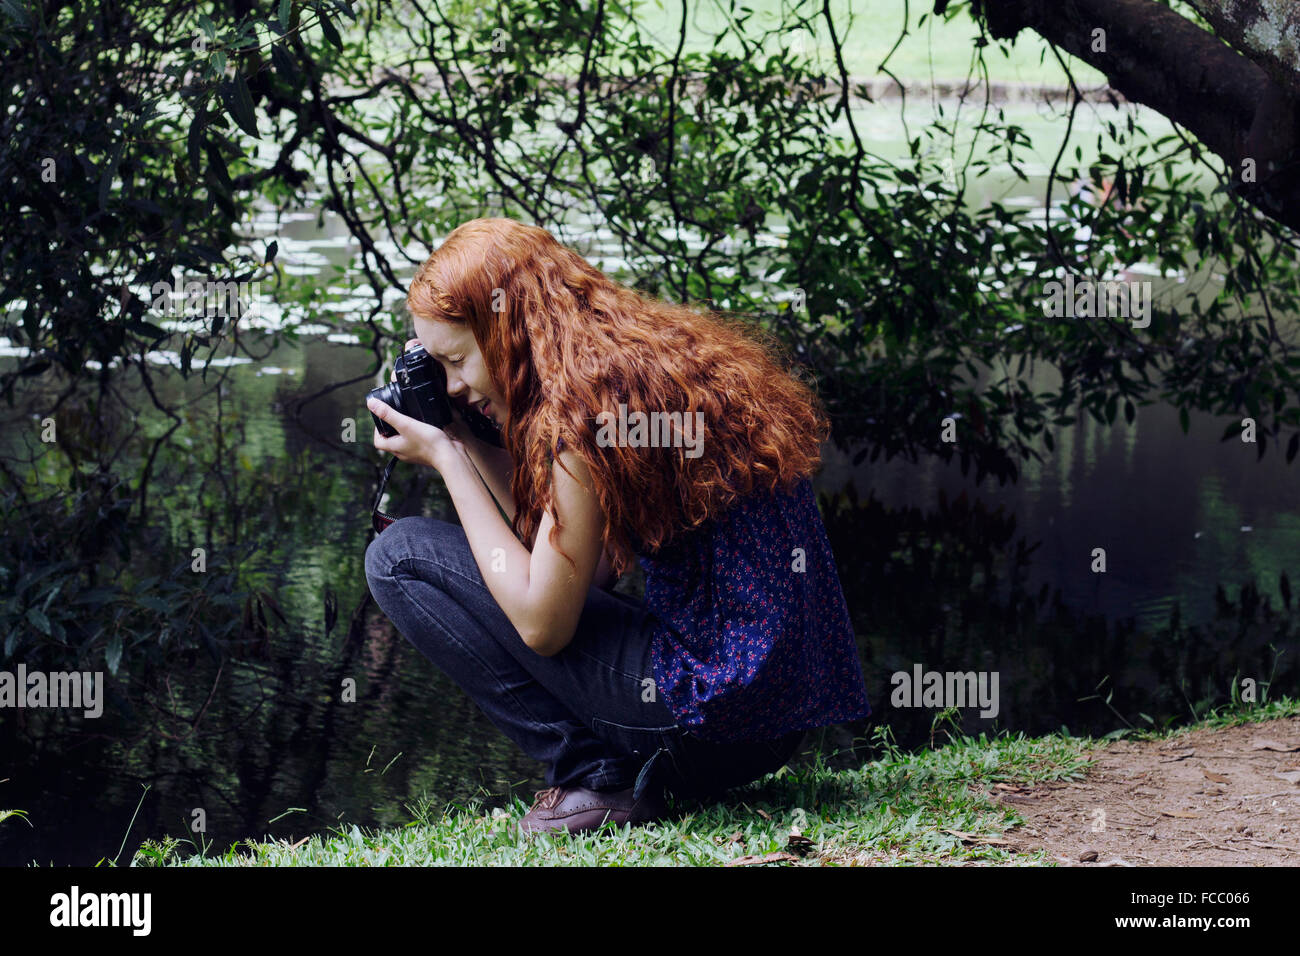 Side View Of A Woman Photographing Plants - Stock Image